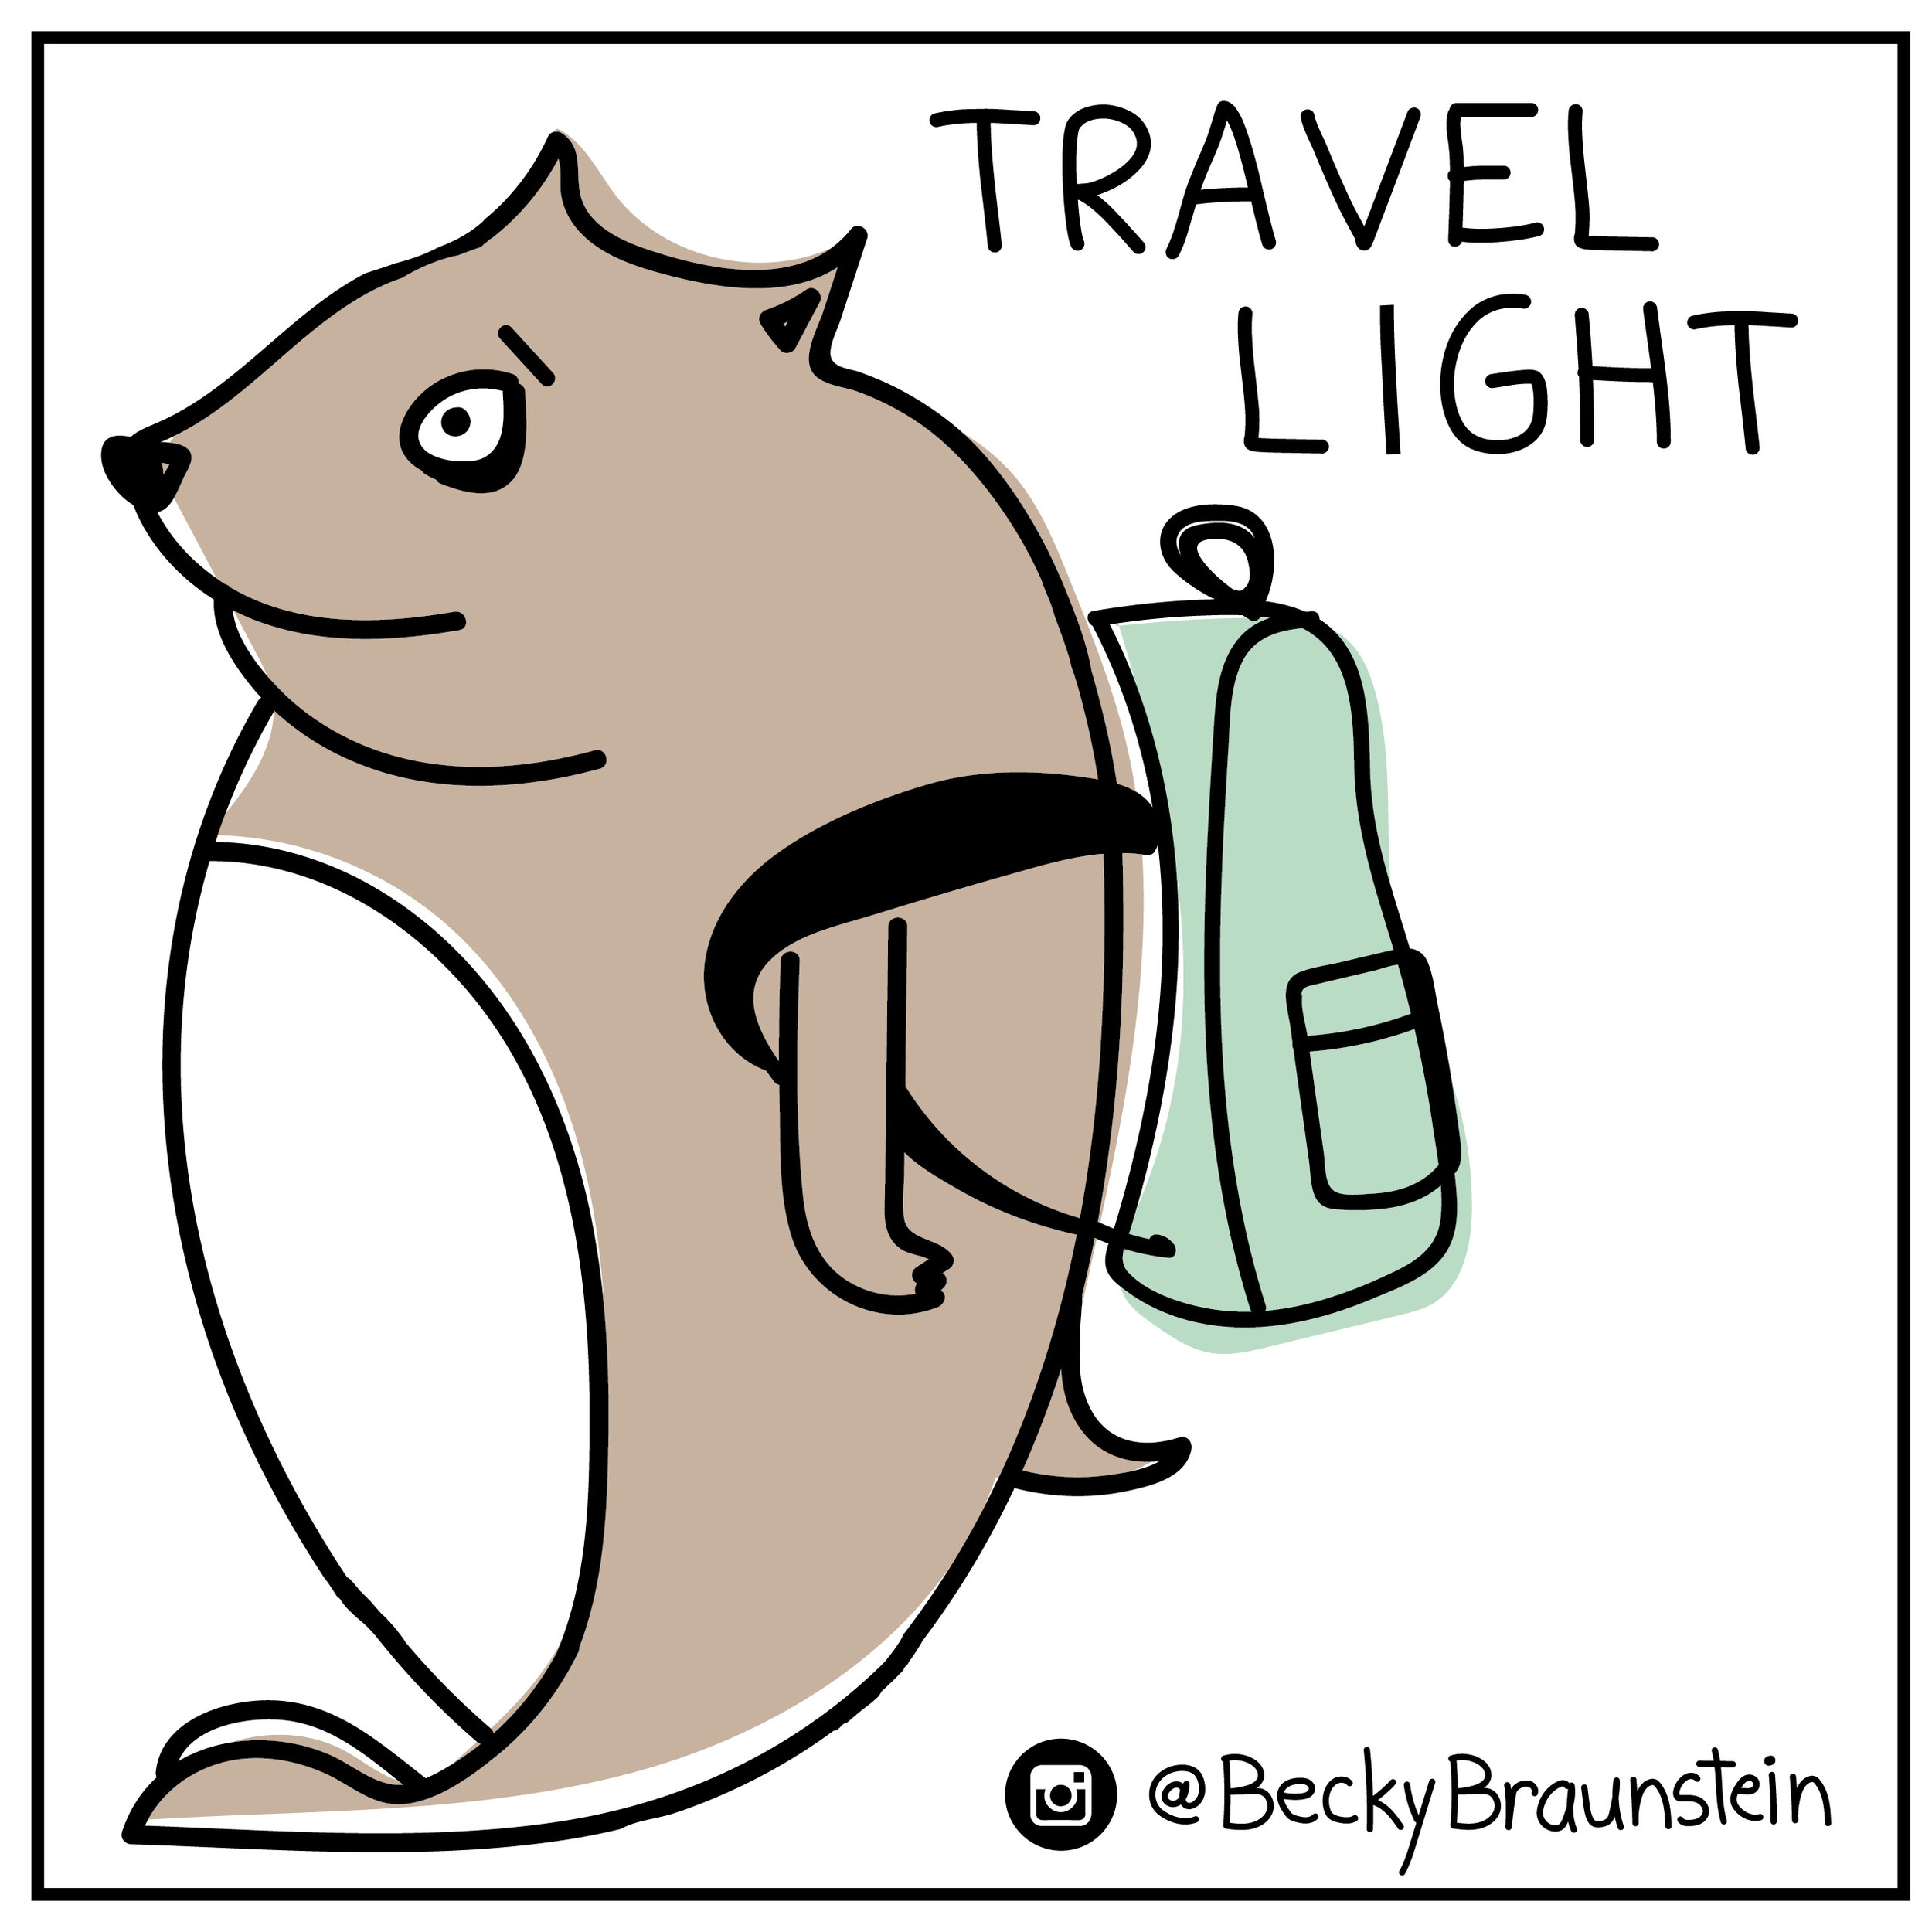 Travel Light-01.jpg